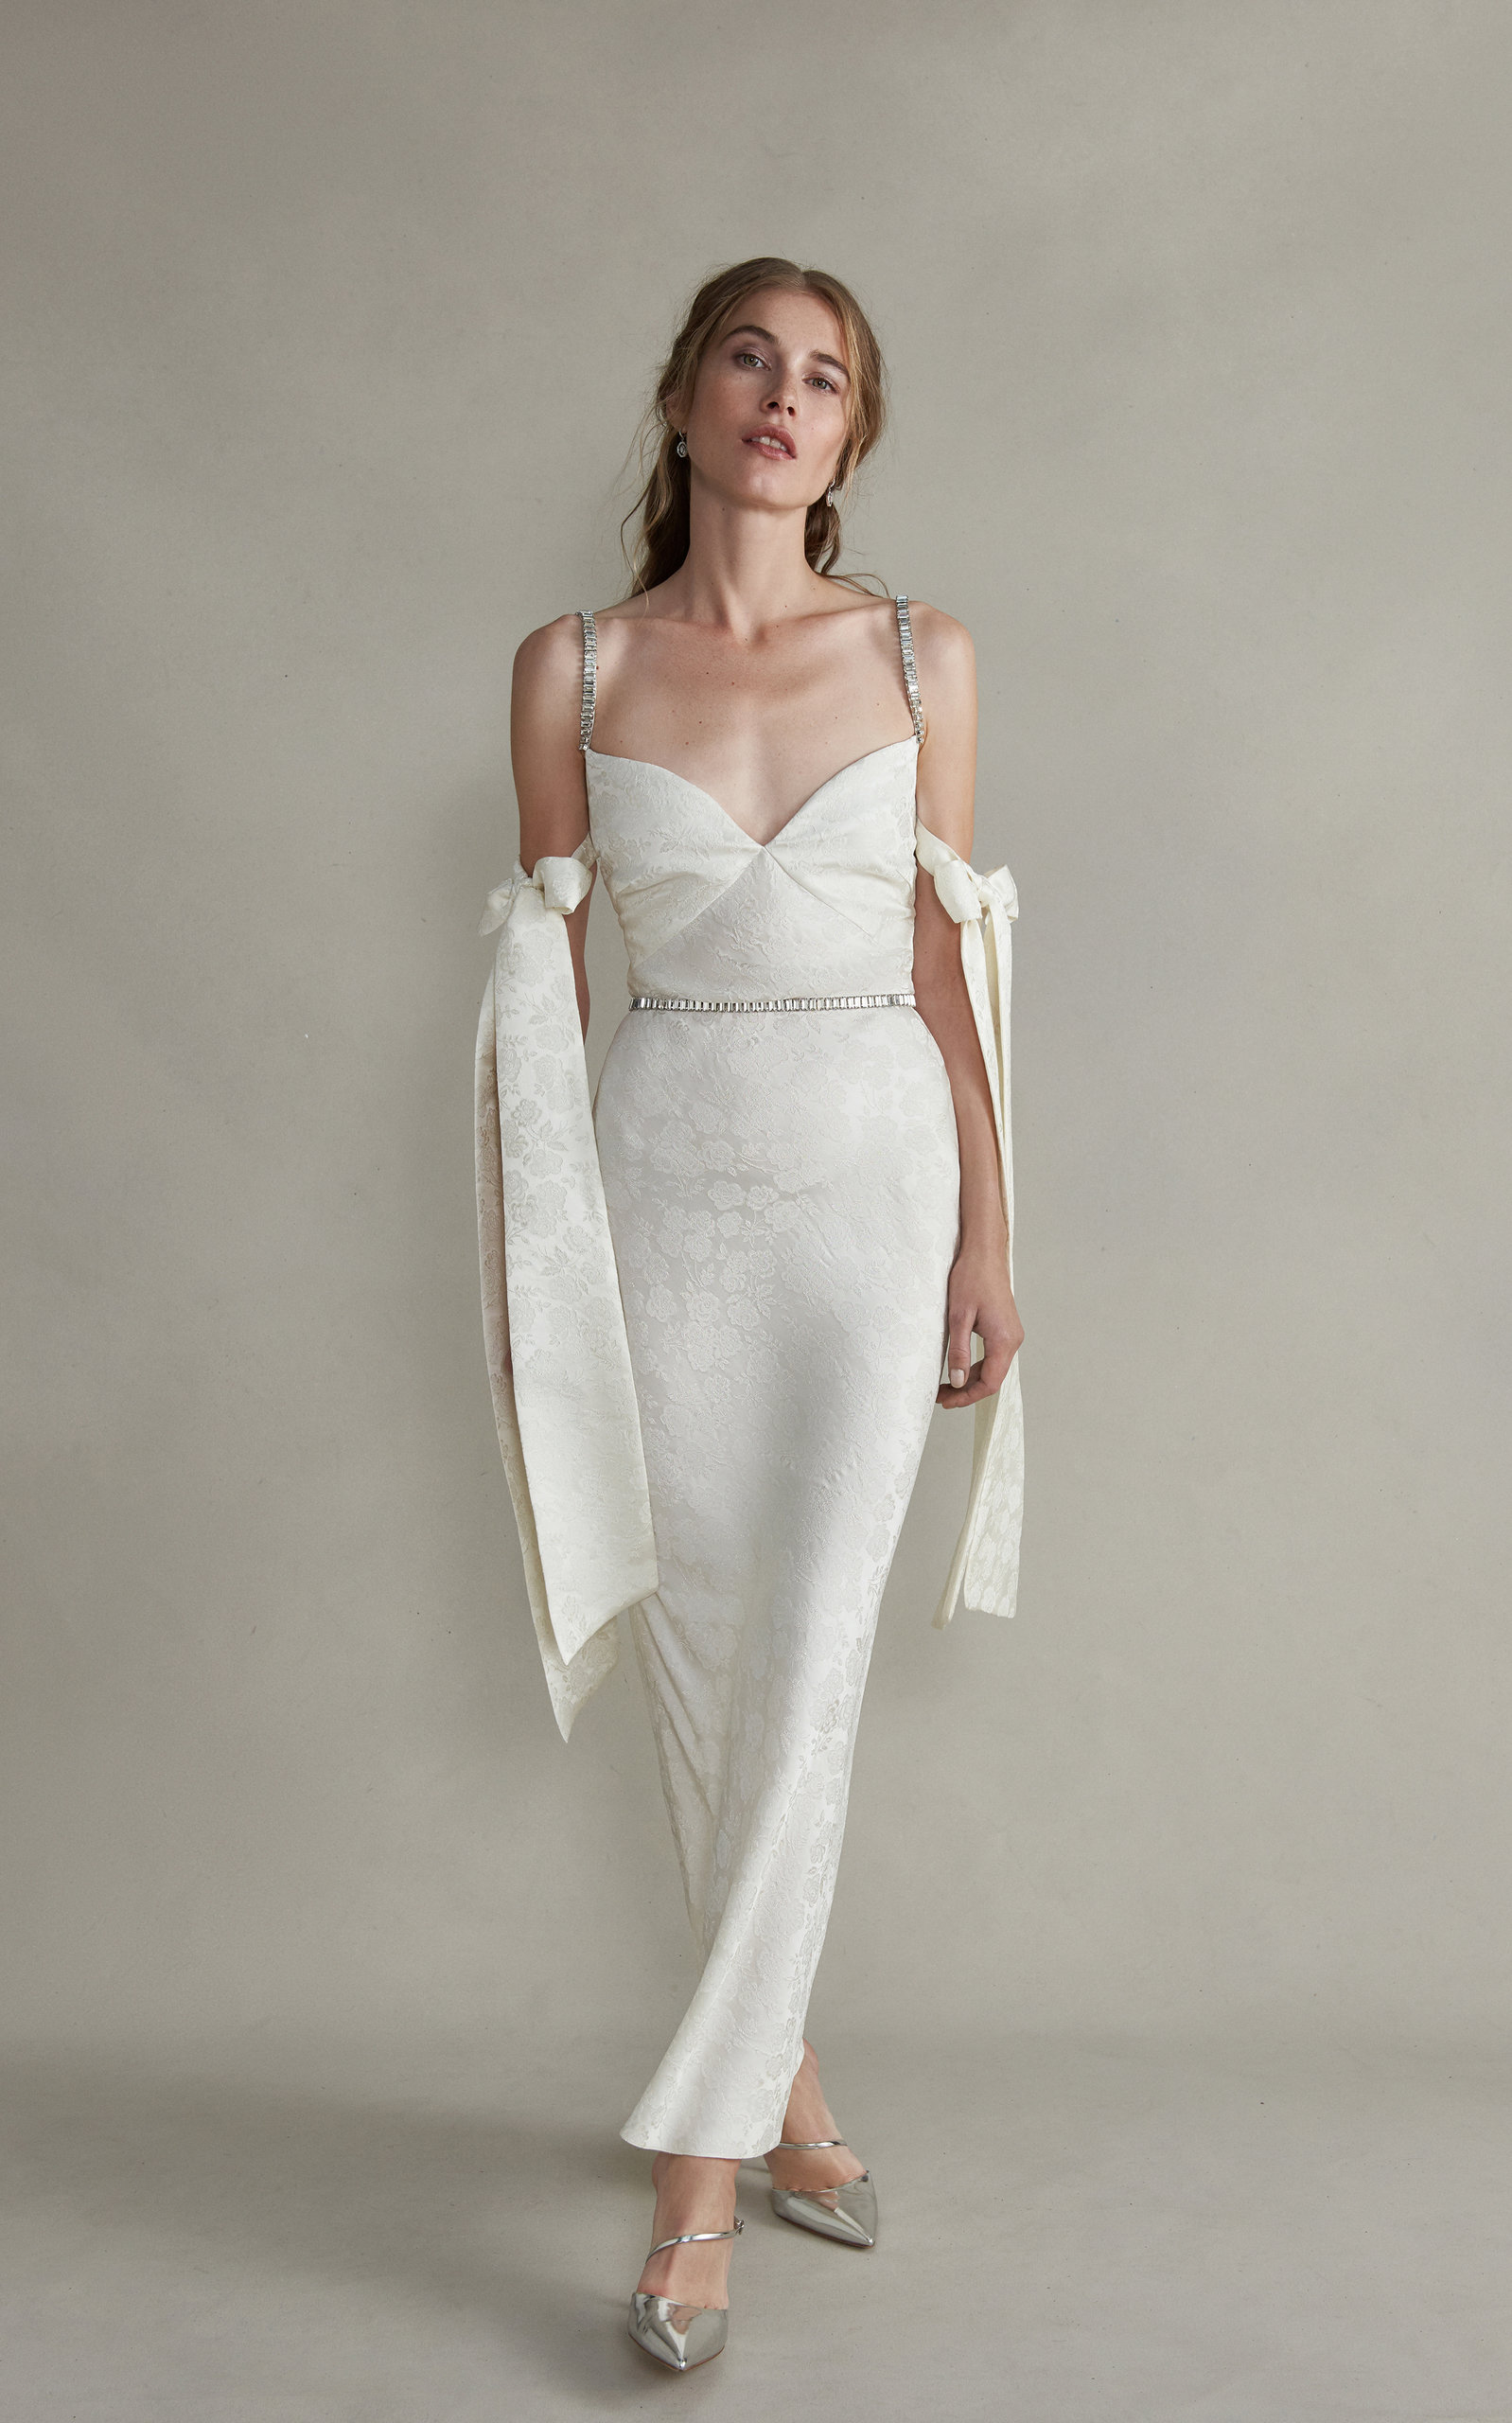 MARKARIAN Rhett Jeweled Cami Strap Dress With Arm Bow Detail in White